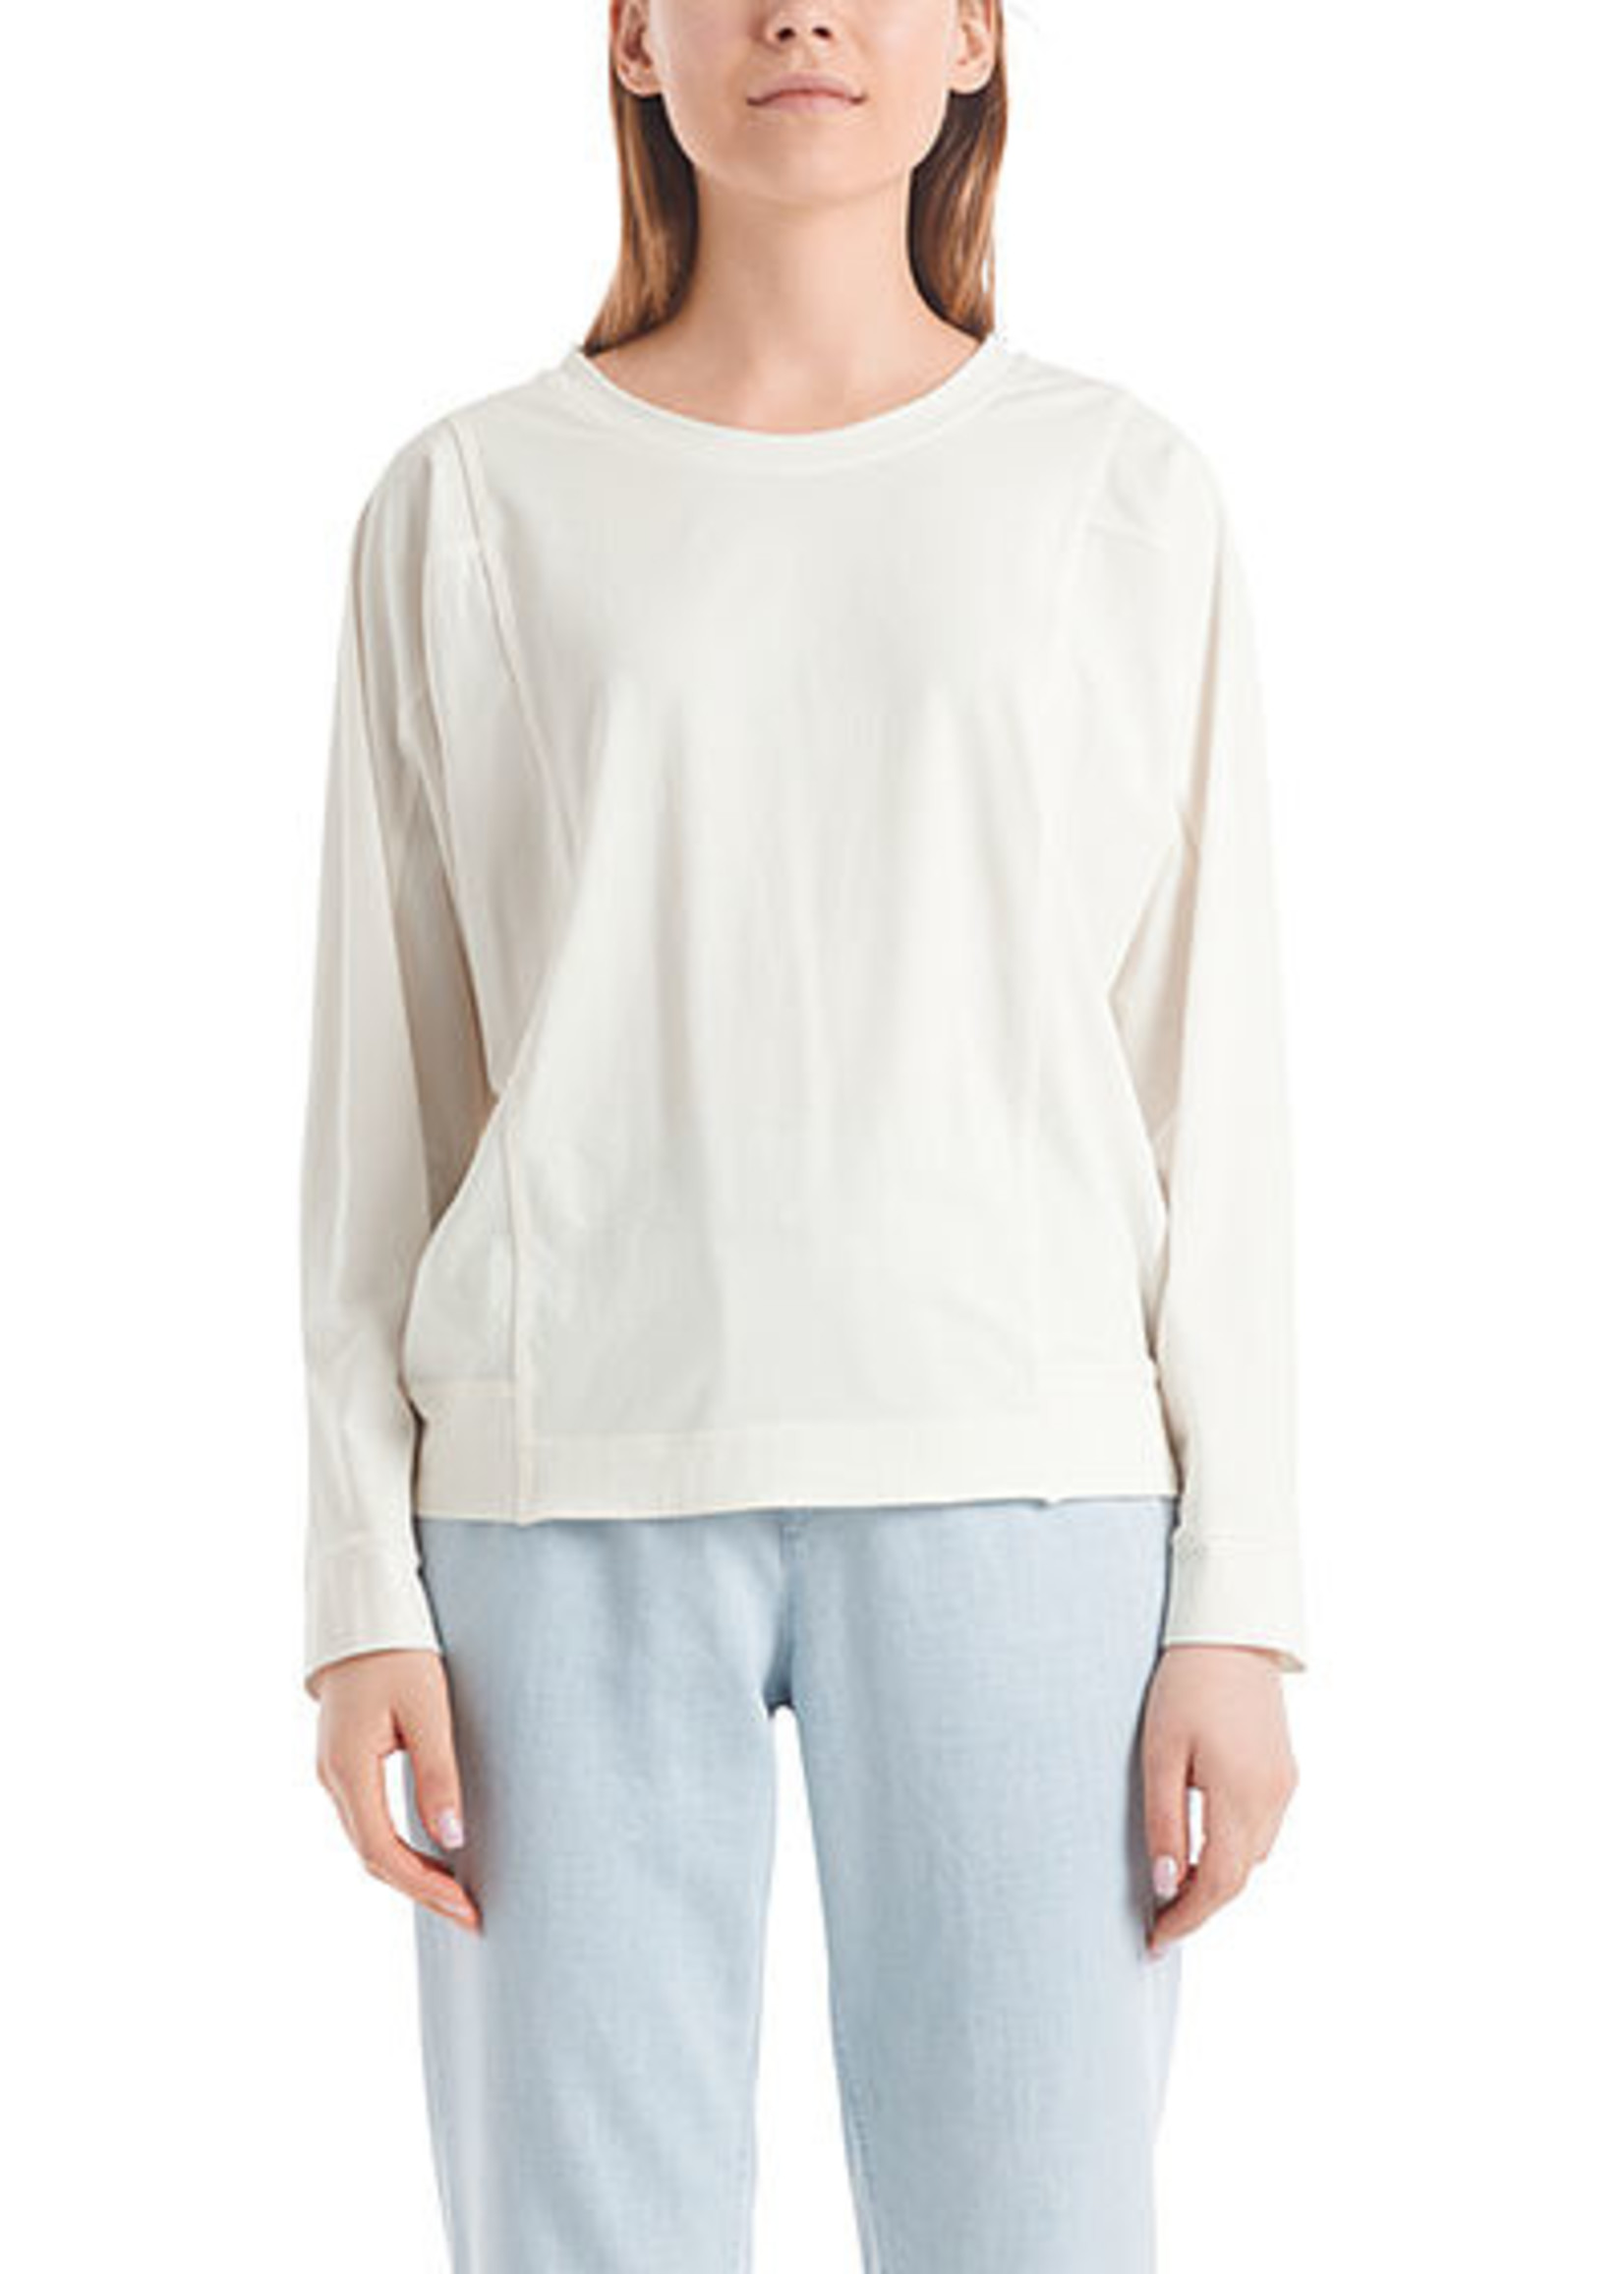 Marccain Sports T-shirt RS 48.07 J77 off-white